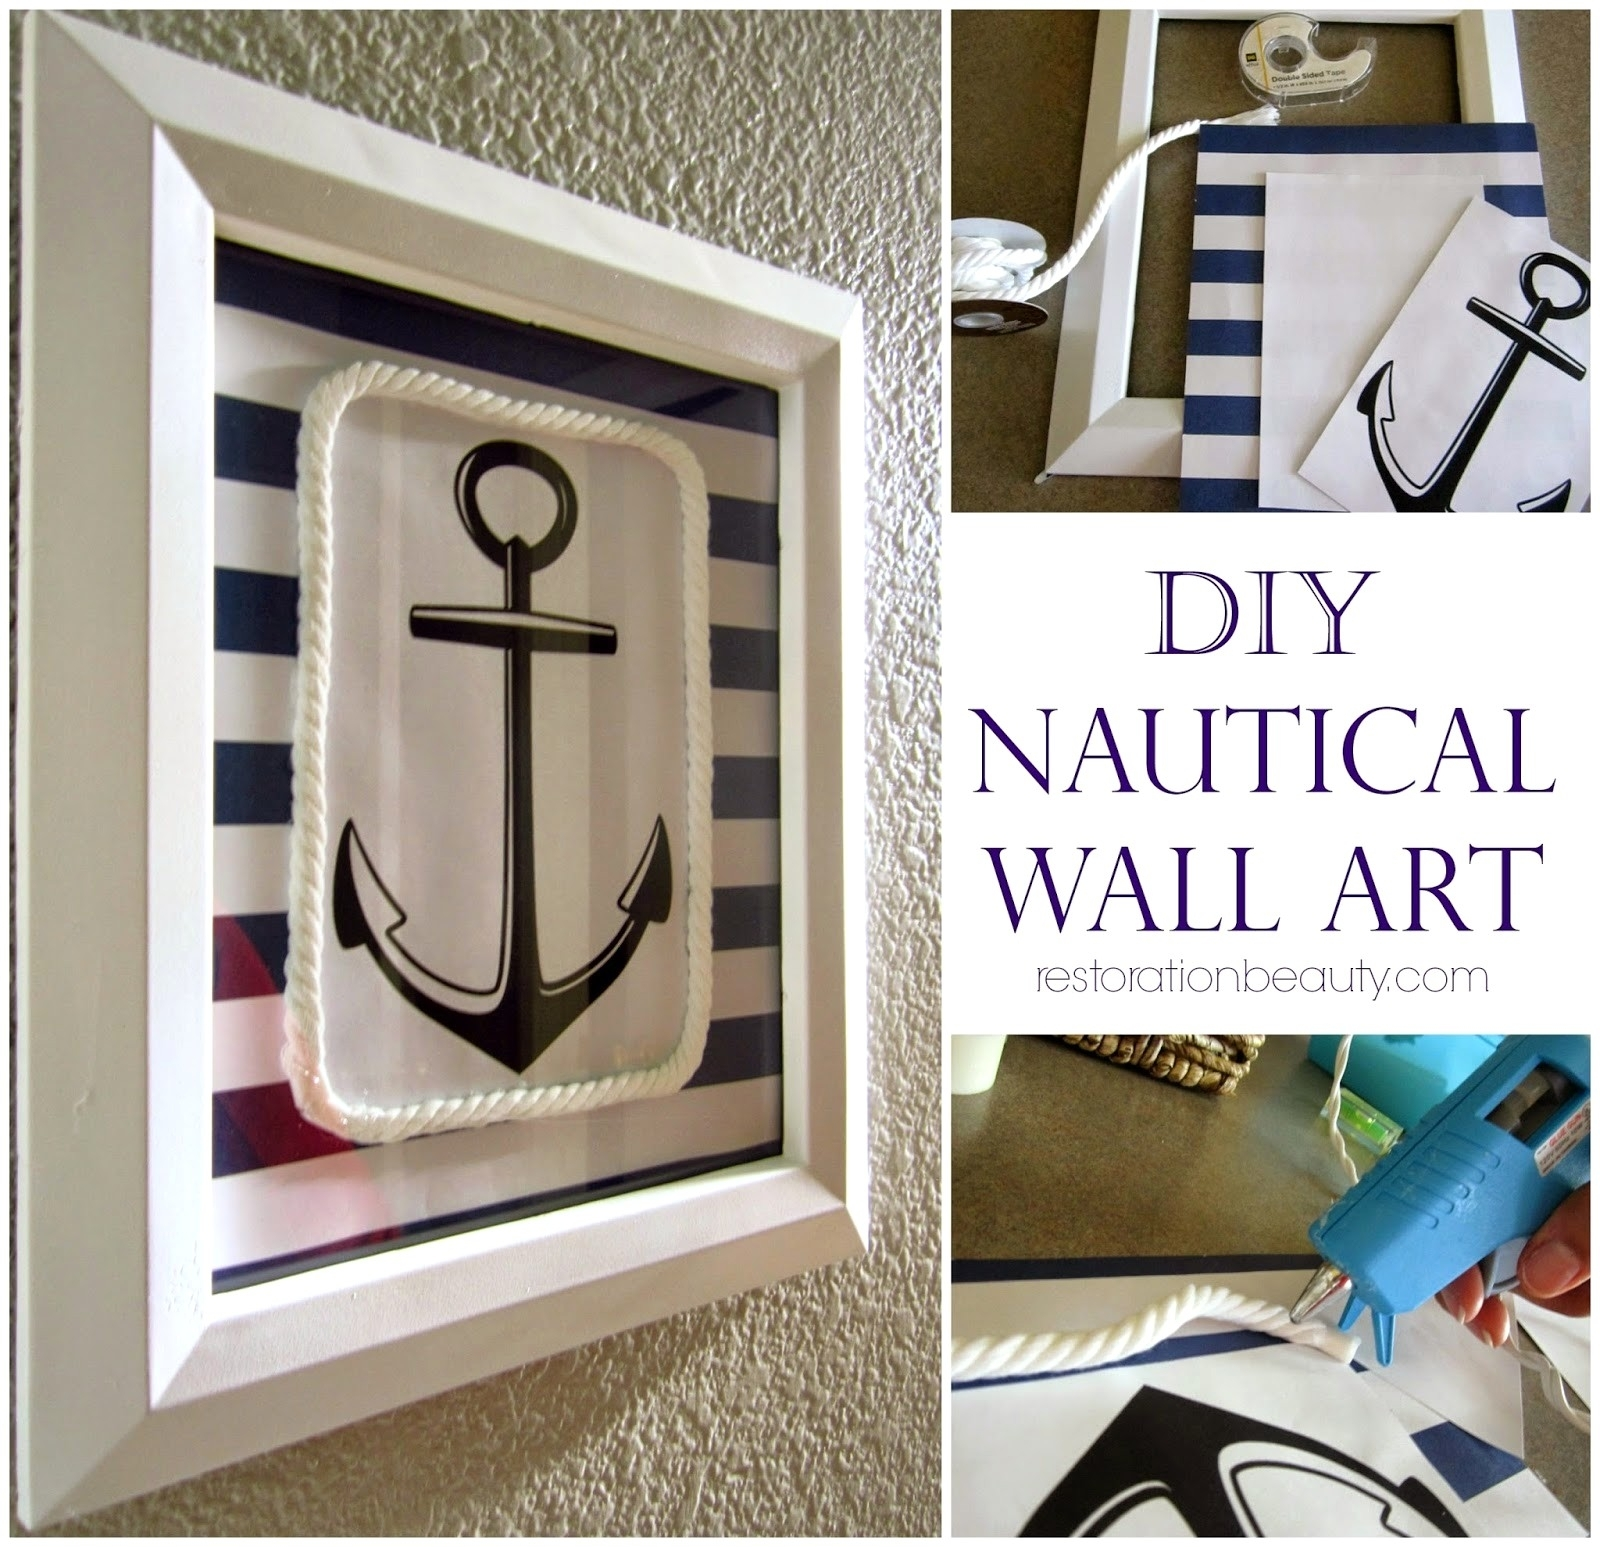 Diy Nautical Wall Art 17 Anchor Decor | Albertstreetmotors Pertaining To Most Current Nautical Wall Art (Gallery 14 of 15)